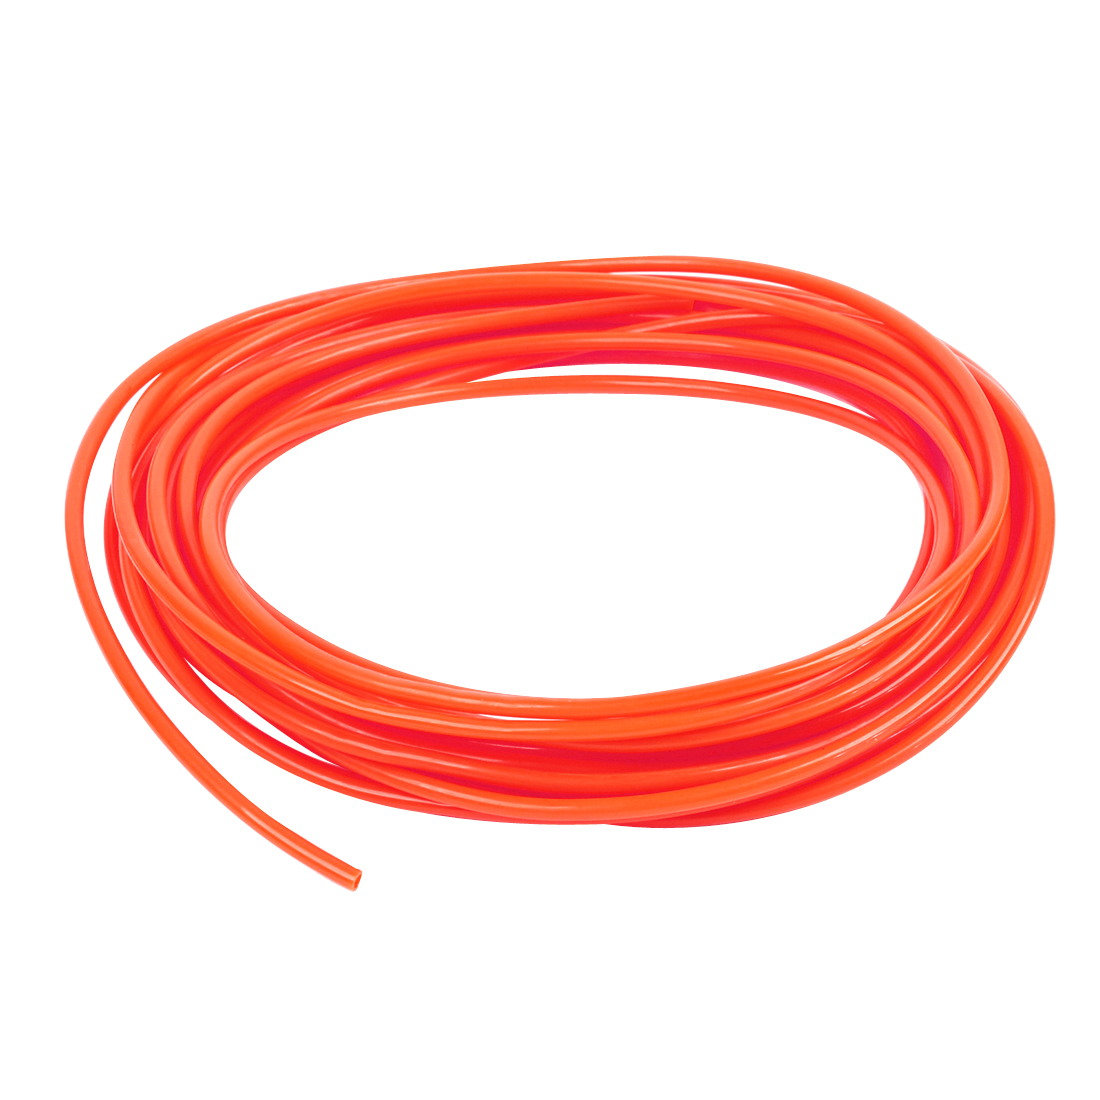 Orange 4mm OD 2.5mm ID 10 Meter Pneumatic PU Air Tube Hose